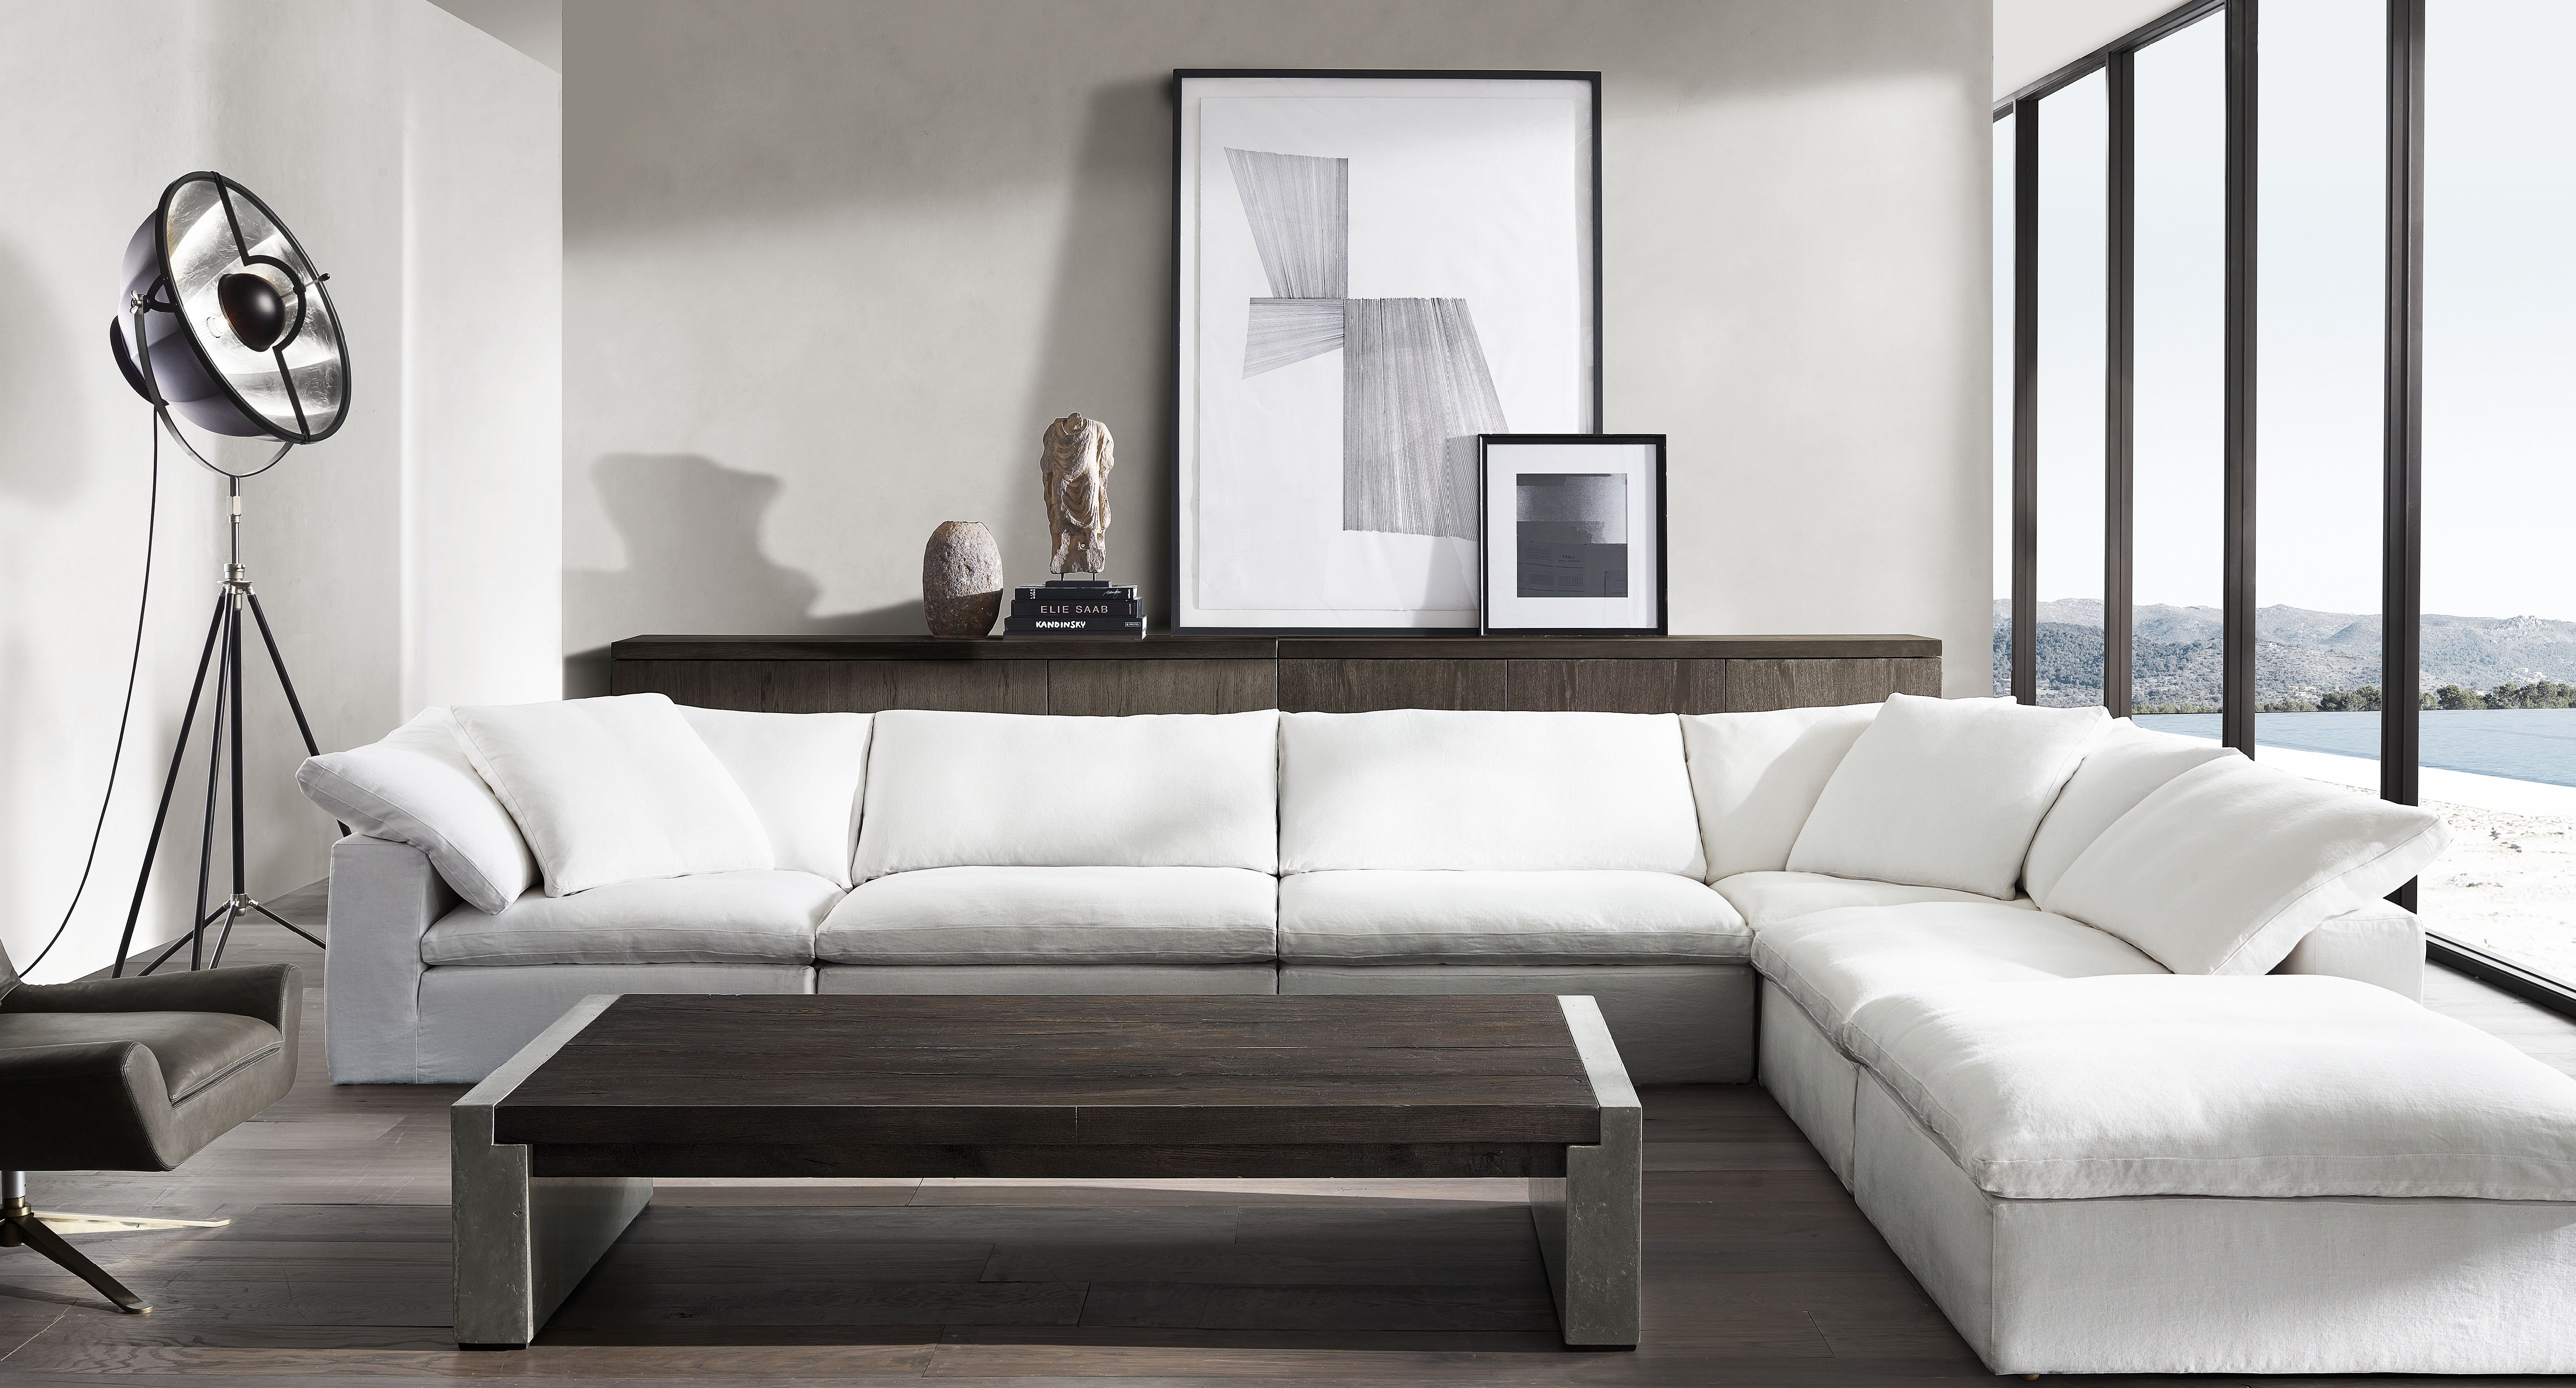 Appealing Restoration Hardware Sectional Sofas 49 For Lee Sectional Intended For Restoration Hardware Sectional Sofas (View 5 of 10)